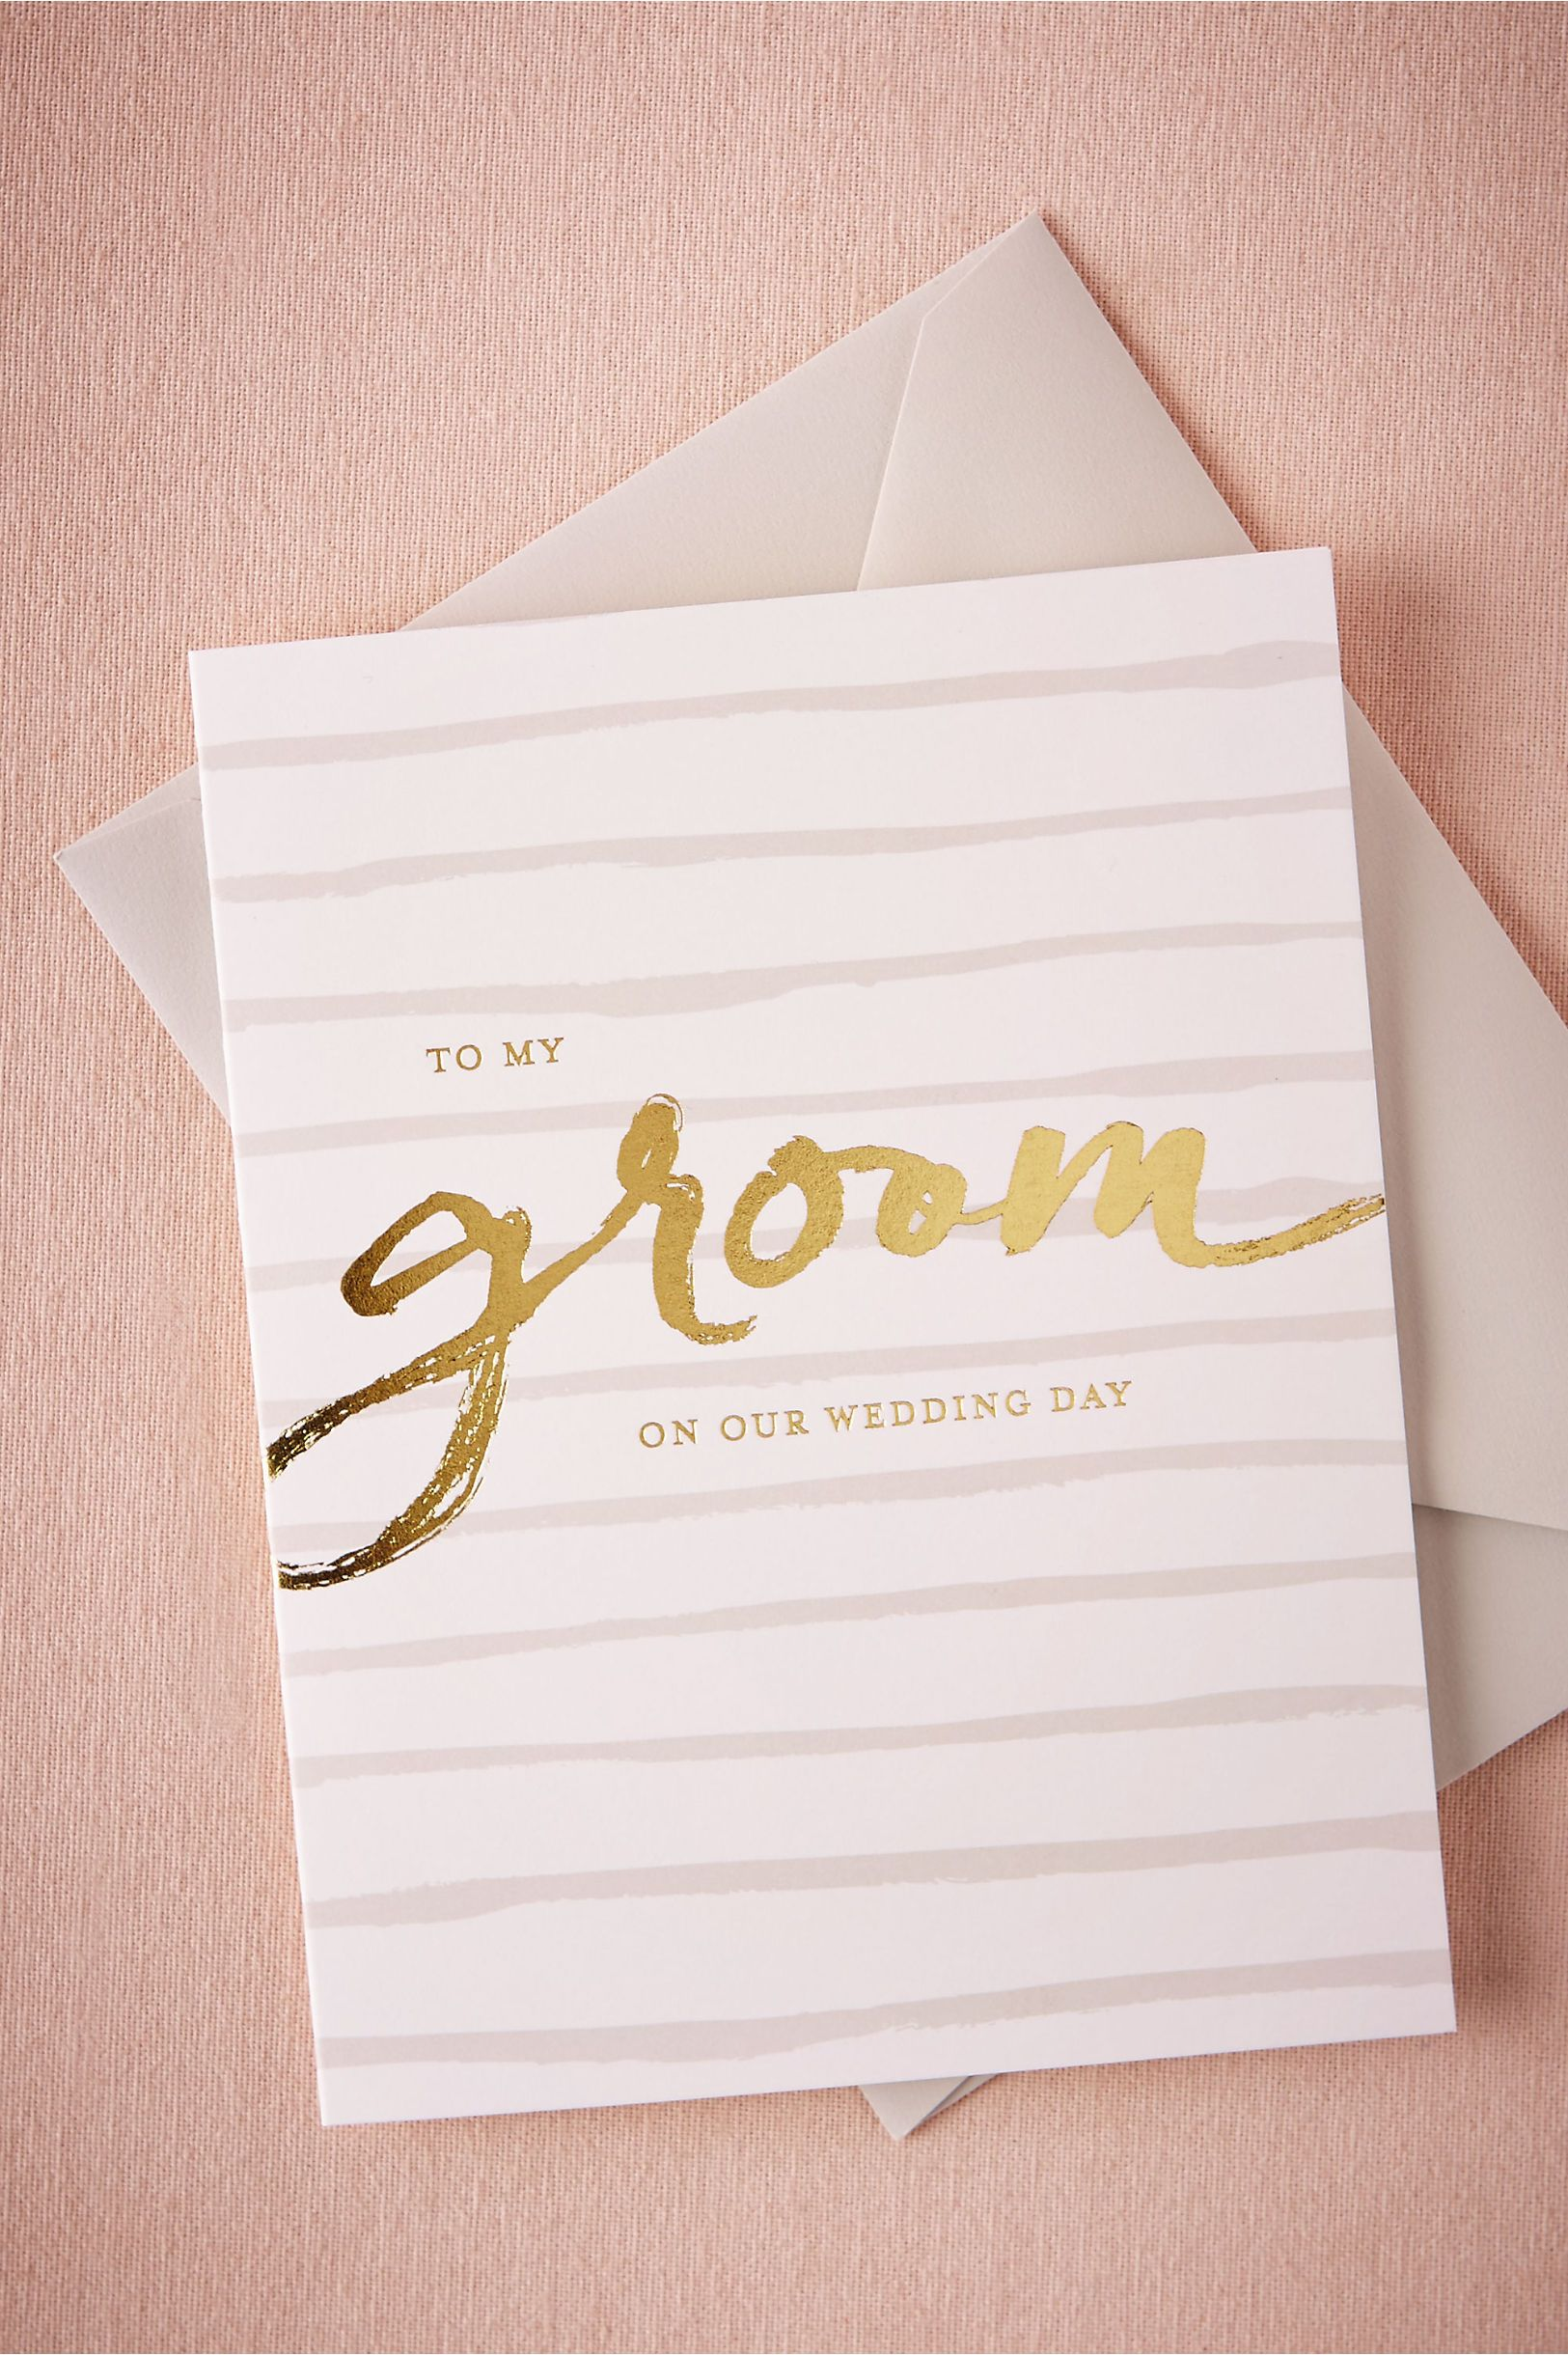 15 Super Sweet Groom Cards for Hubby